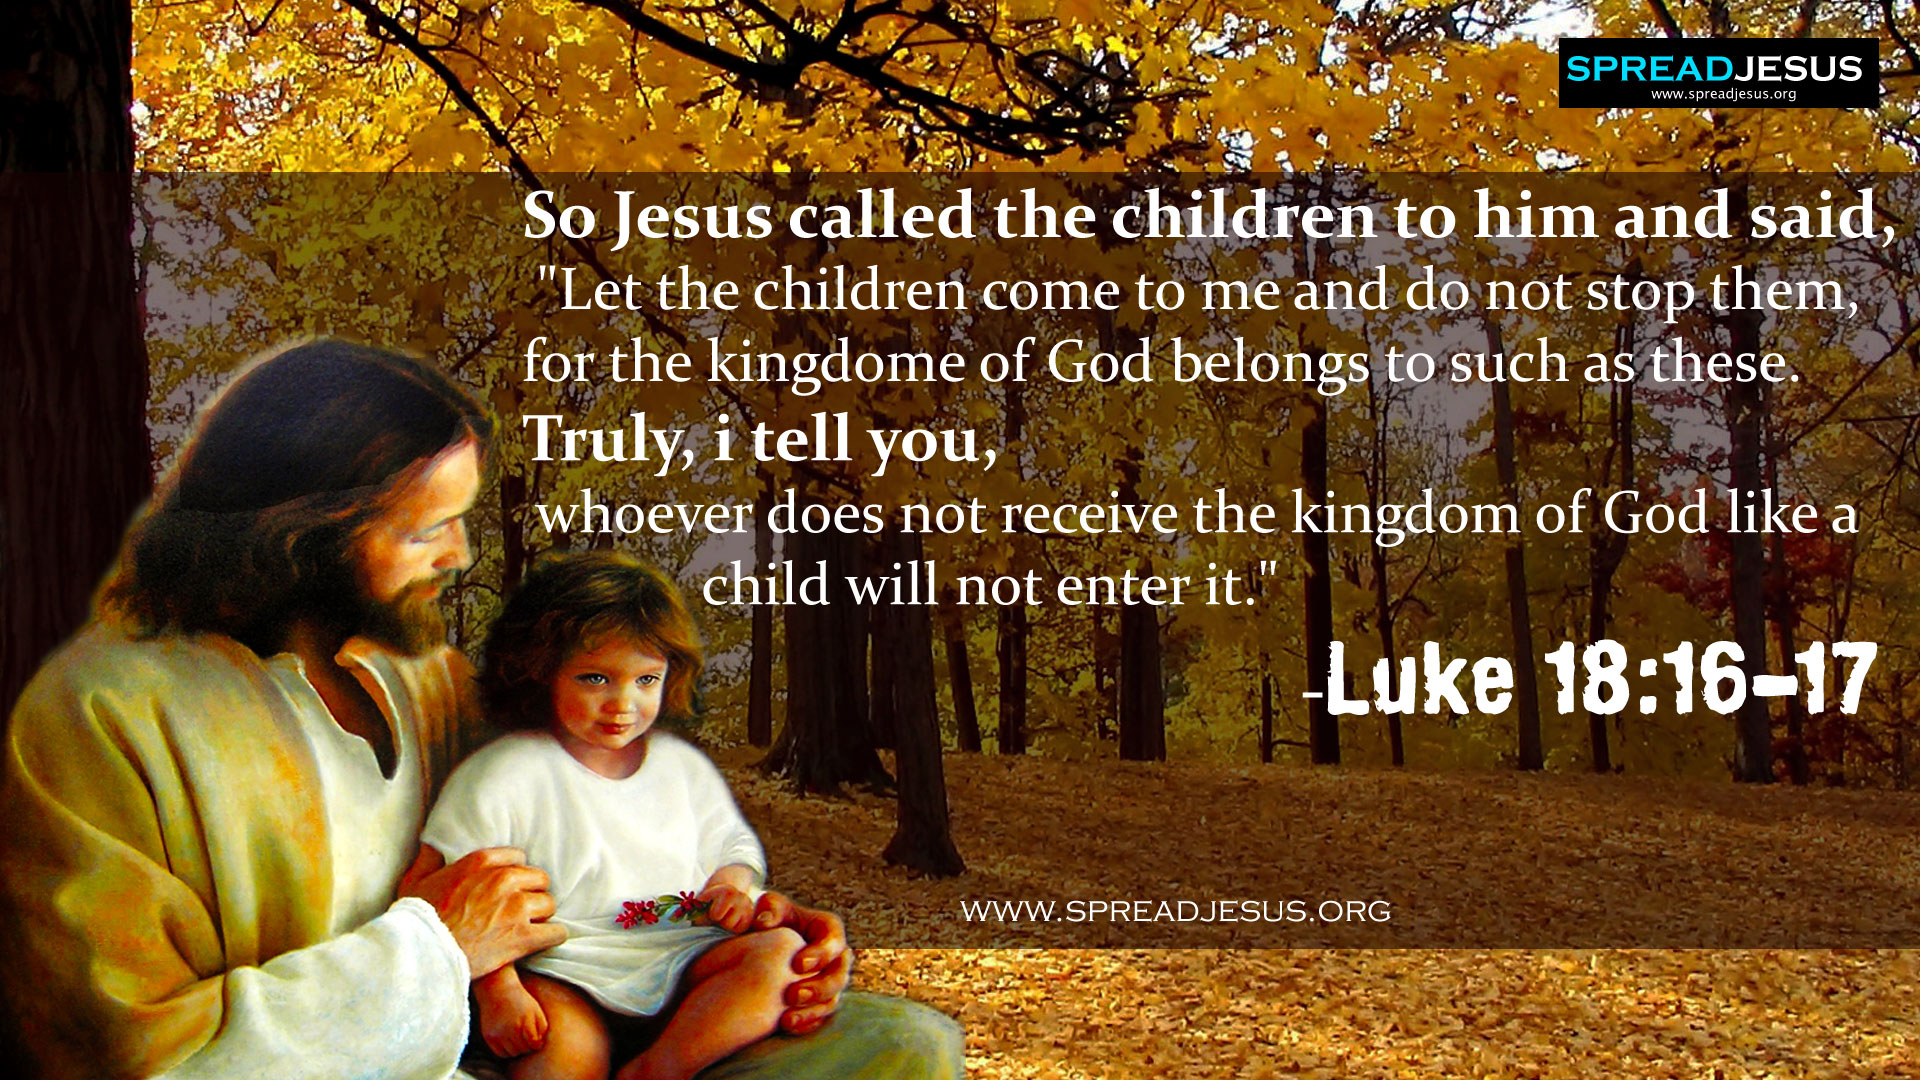 "Jesu christ with children HD wallpapers BIBLE QUOTATION-Let the children come to me and do not stop them So Jesus called the children to him and said, ""Let the children come to me and do not stop them, for the kingdome of God belongs to such as these. Truly, i tell you, whoever does not receive the kingdom of God like a child will not enter it."" -Luke 18:16-17"